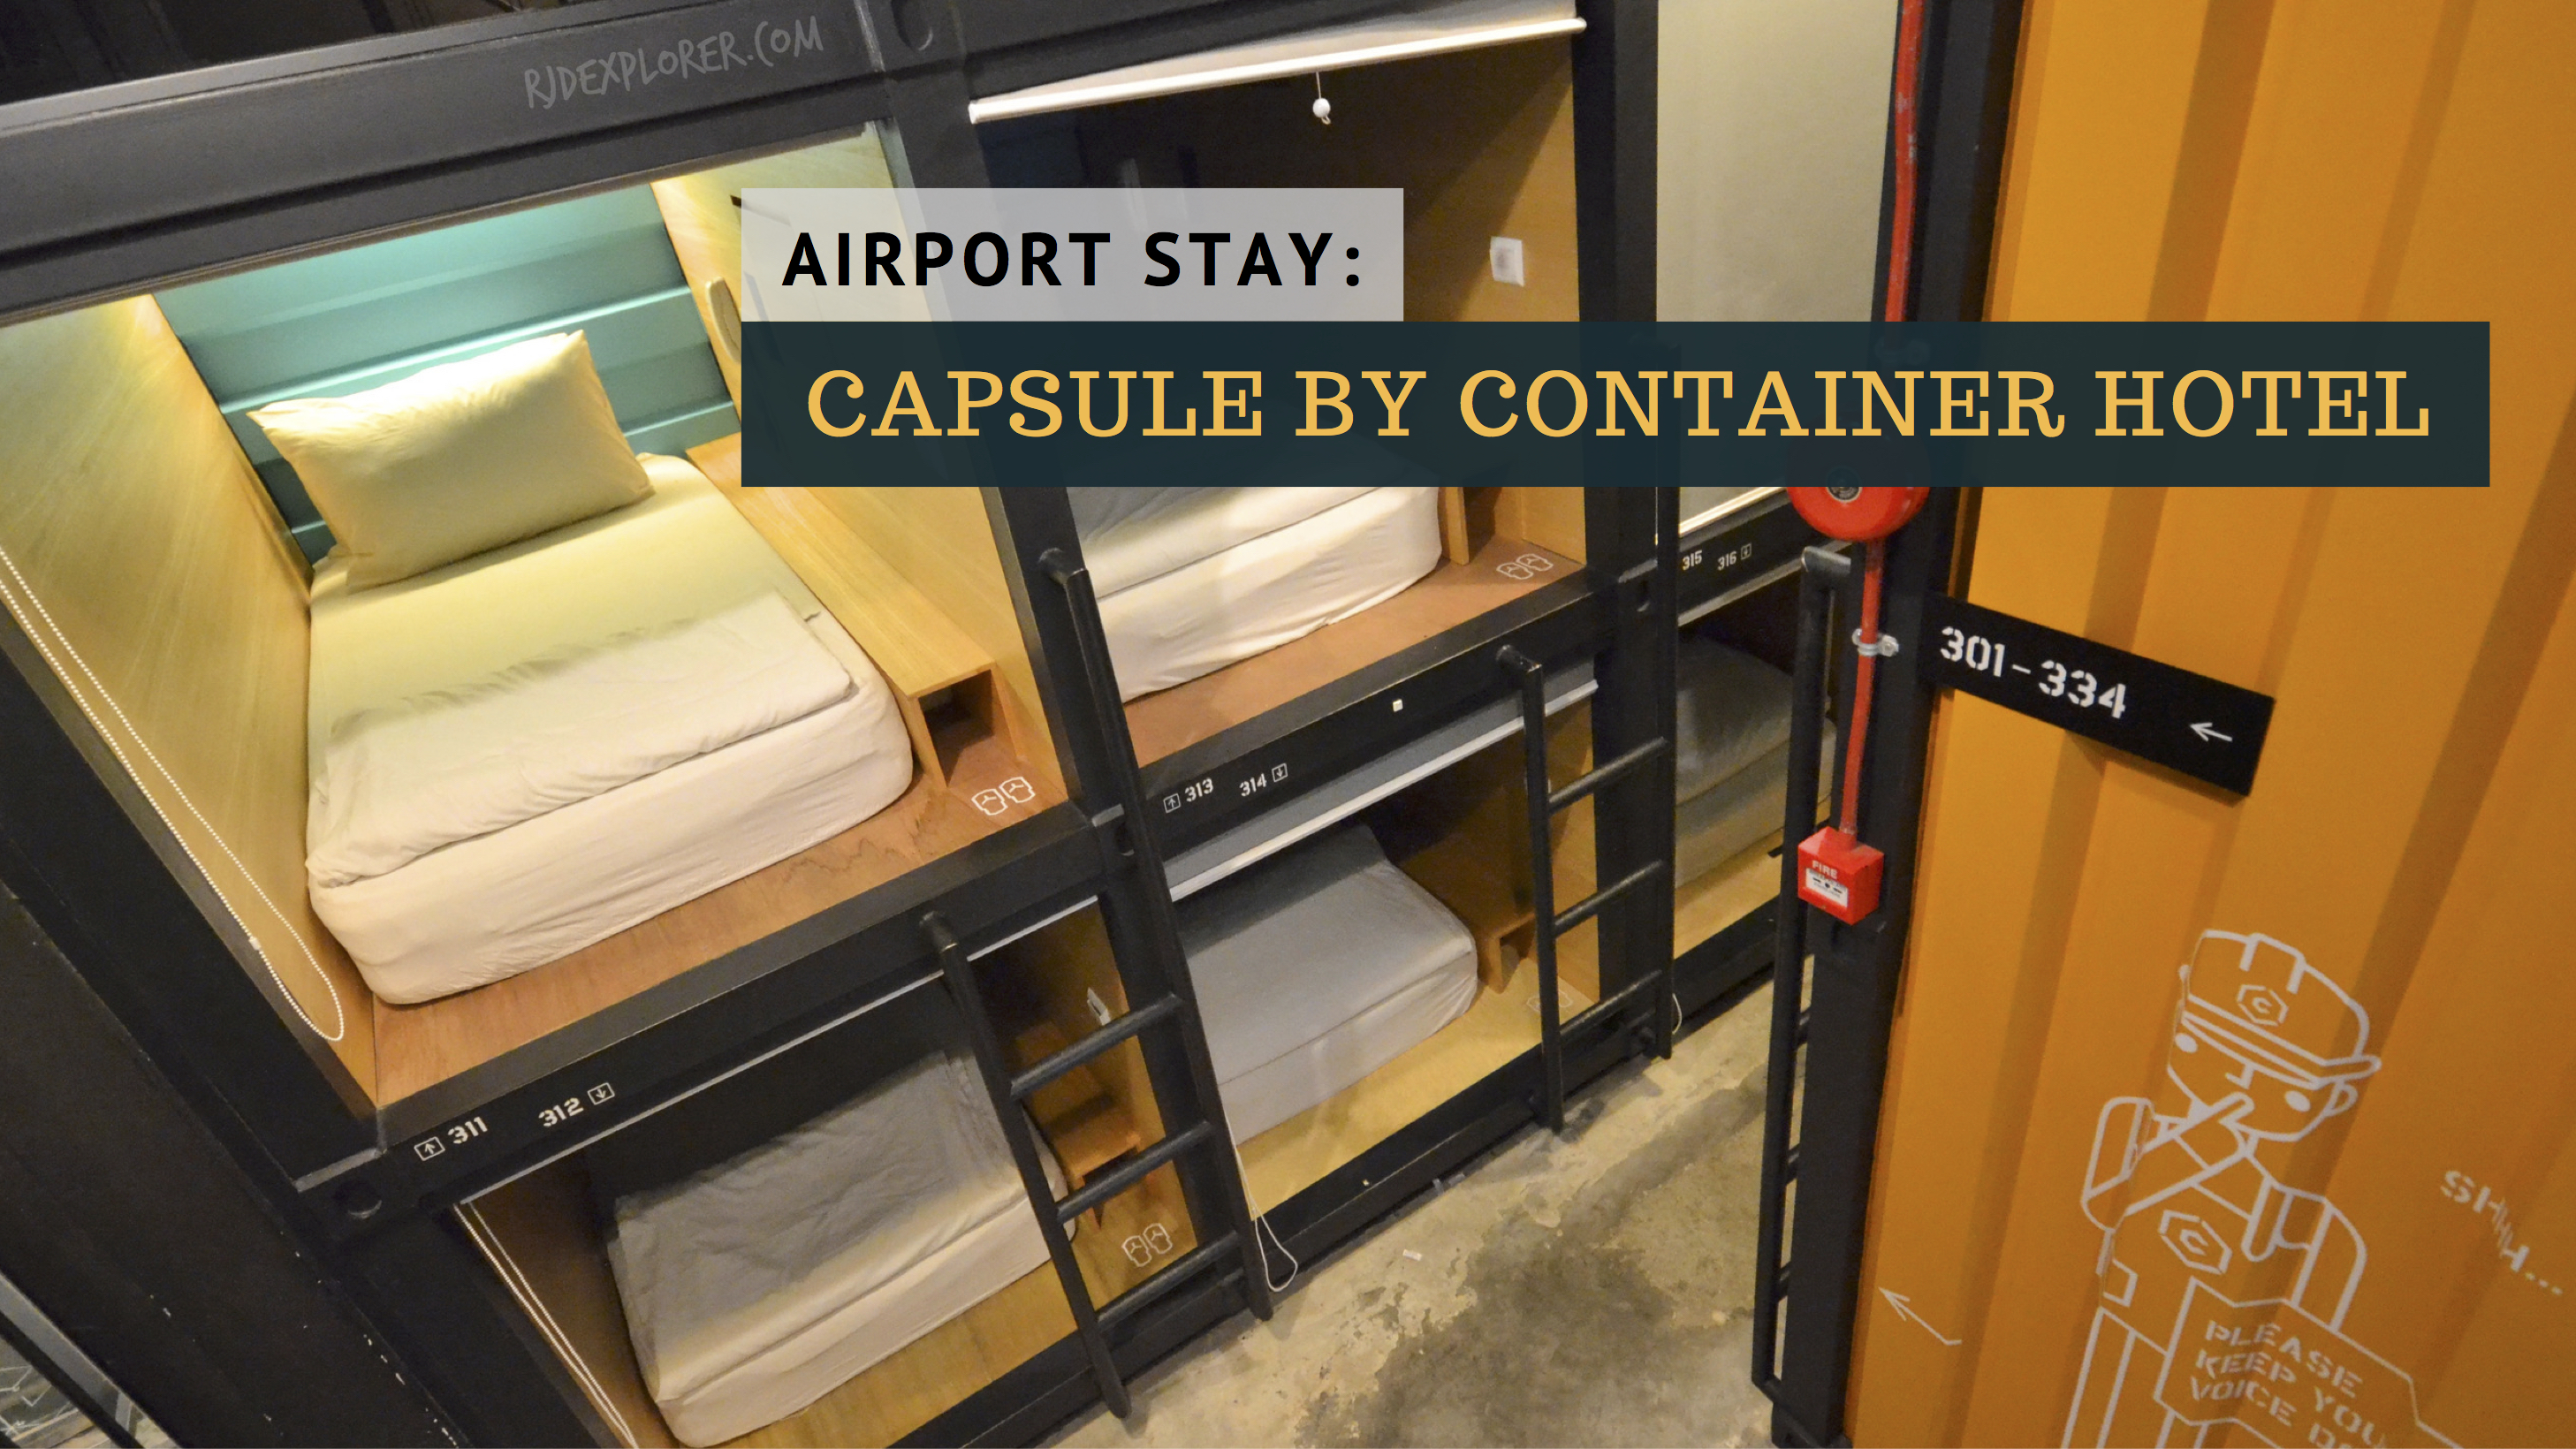 KUALA LUMPUR   CAPSULE by Container Hotel at KLIA2